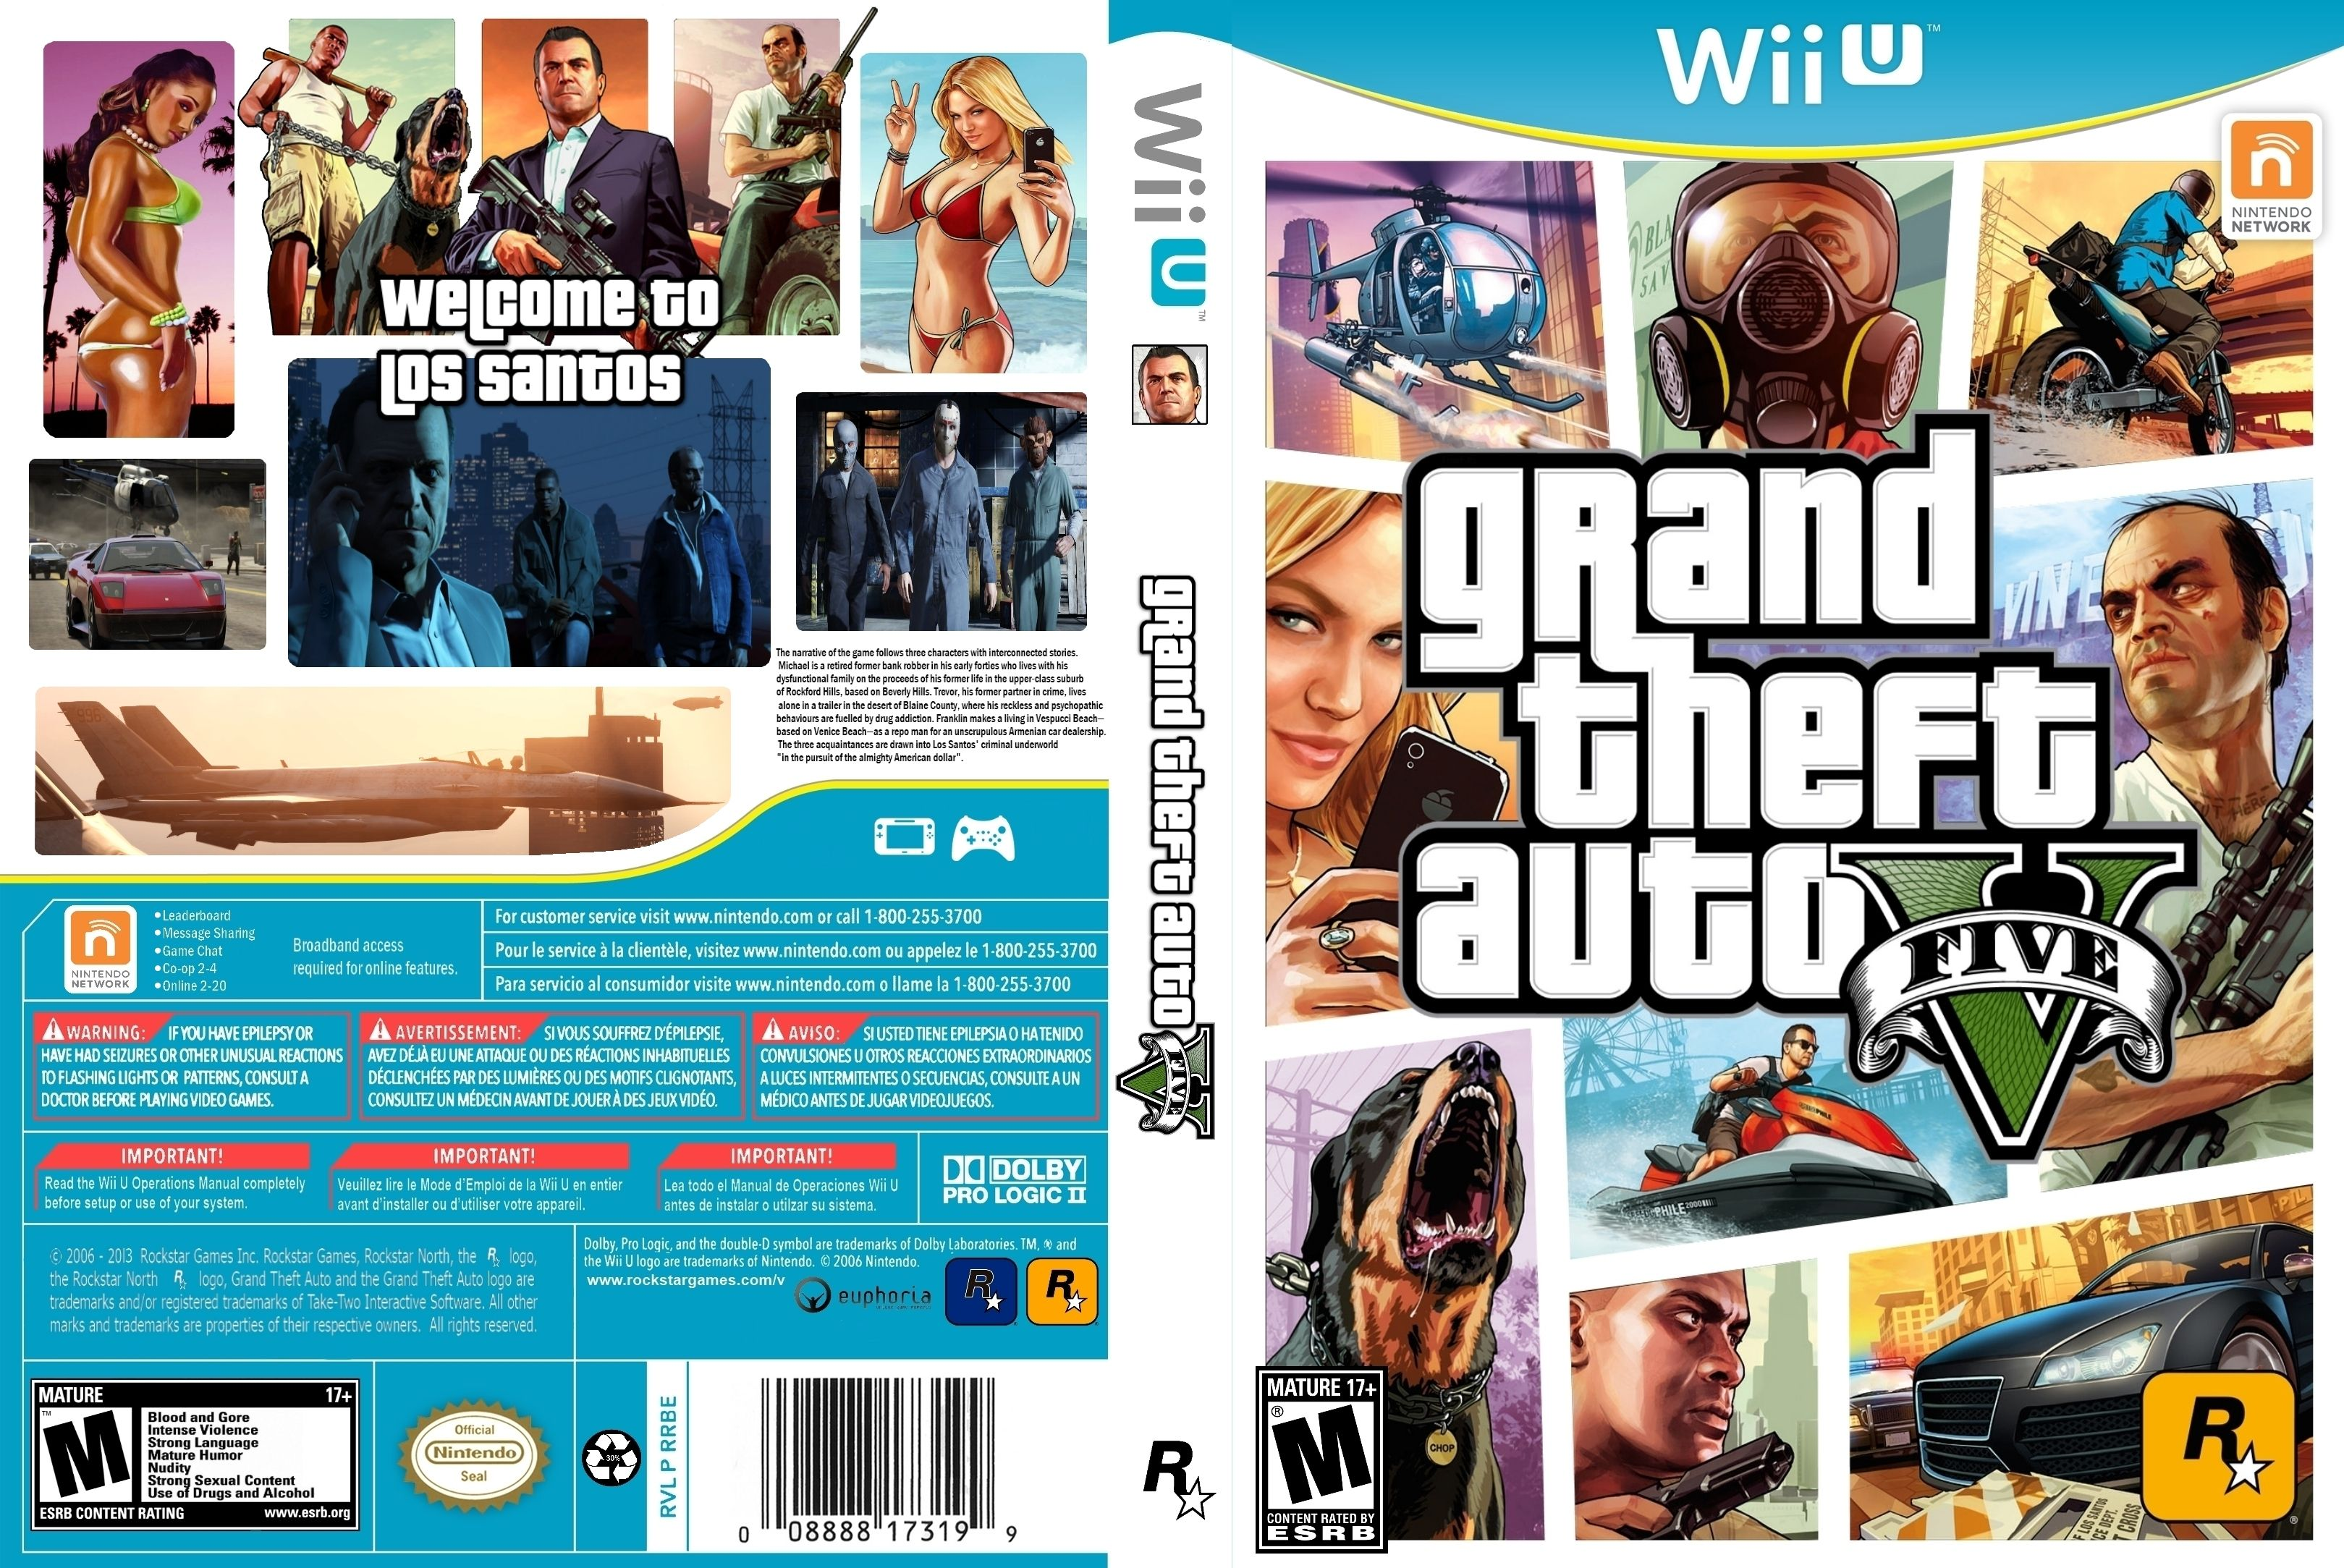 Will there be GTA games for wii? | Yahoo Answers